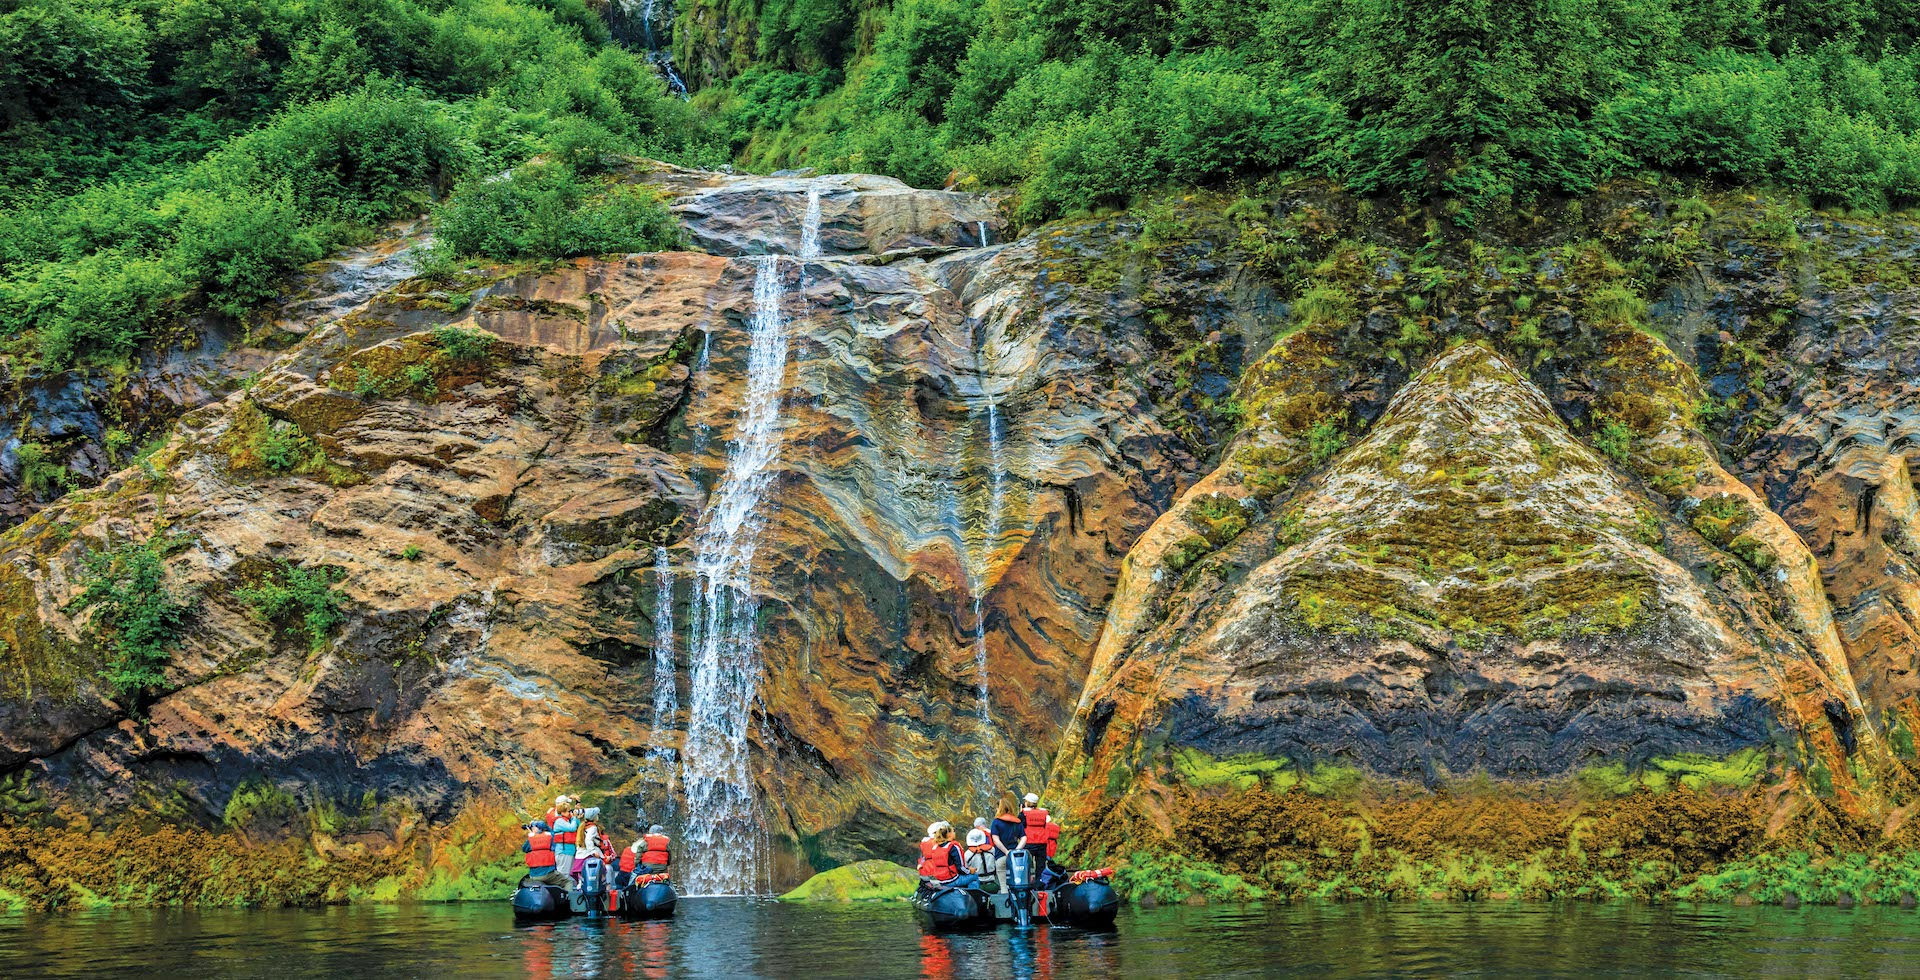 Lindblad Expeditions-National Geographic has announced plans to add additional voyages to its 2021 season in Alaska this summer.